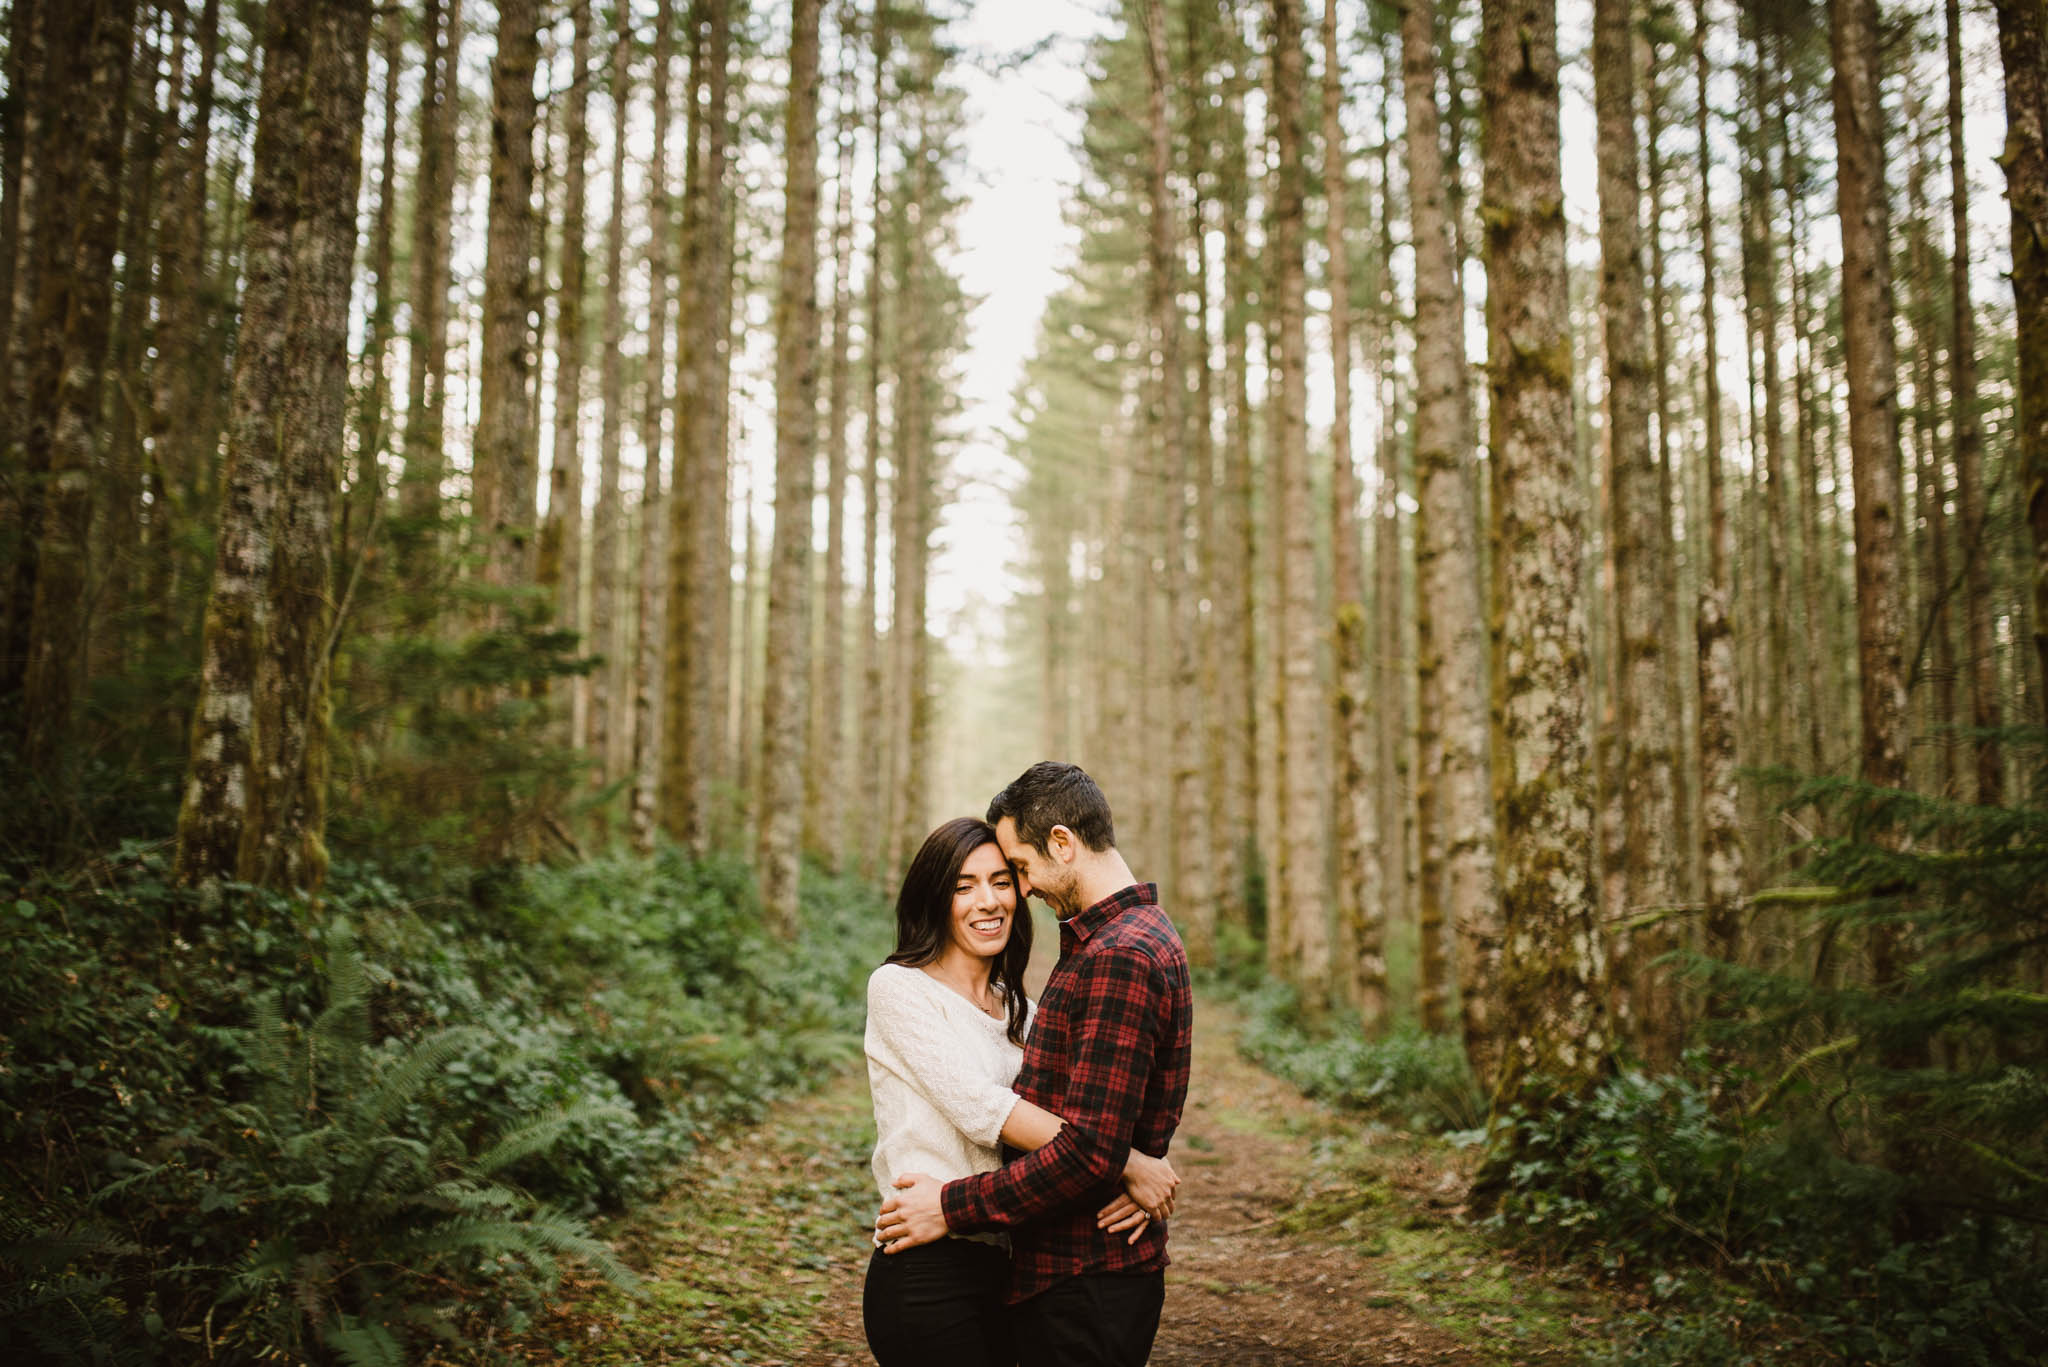 ©Isaiah-&-Taylor-Photography---Rattlesnake-Ledge-Trail-Engagement,-Seattle-Washington-017.jpg